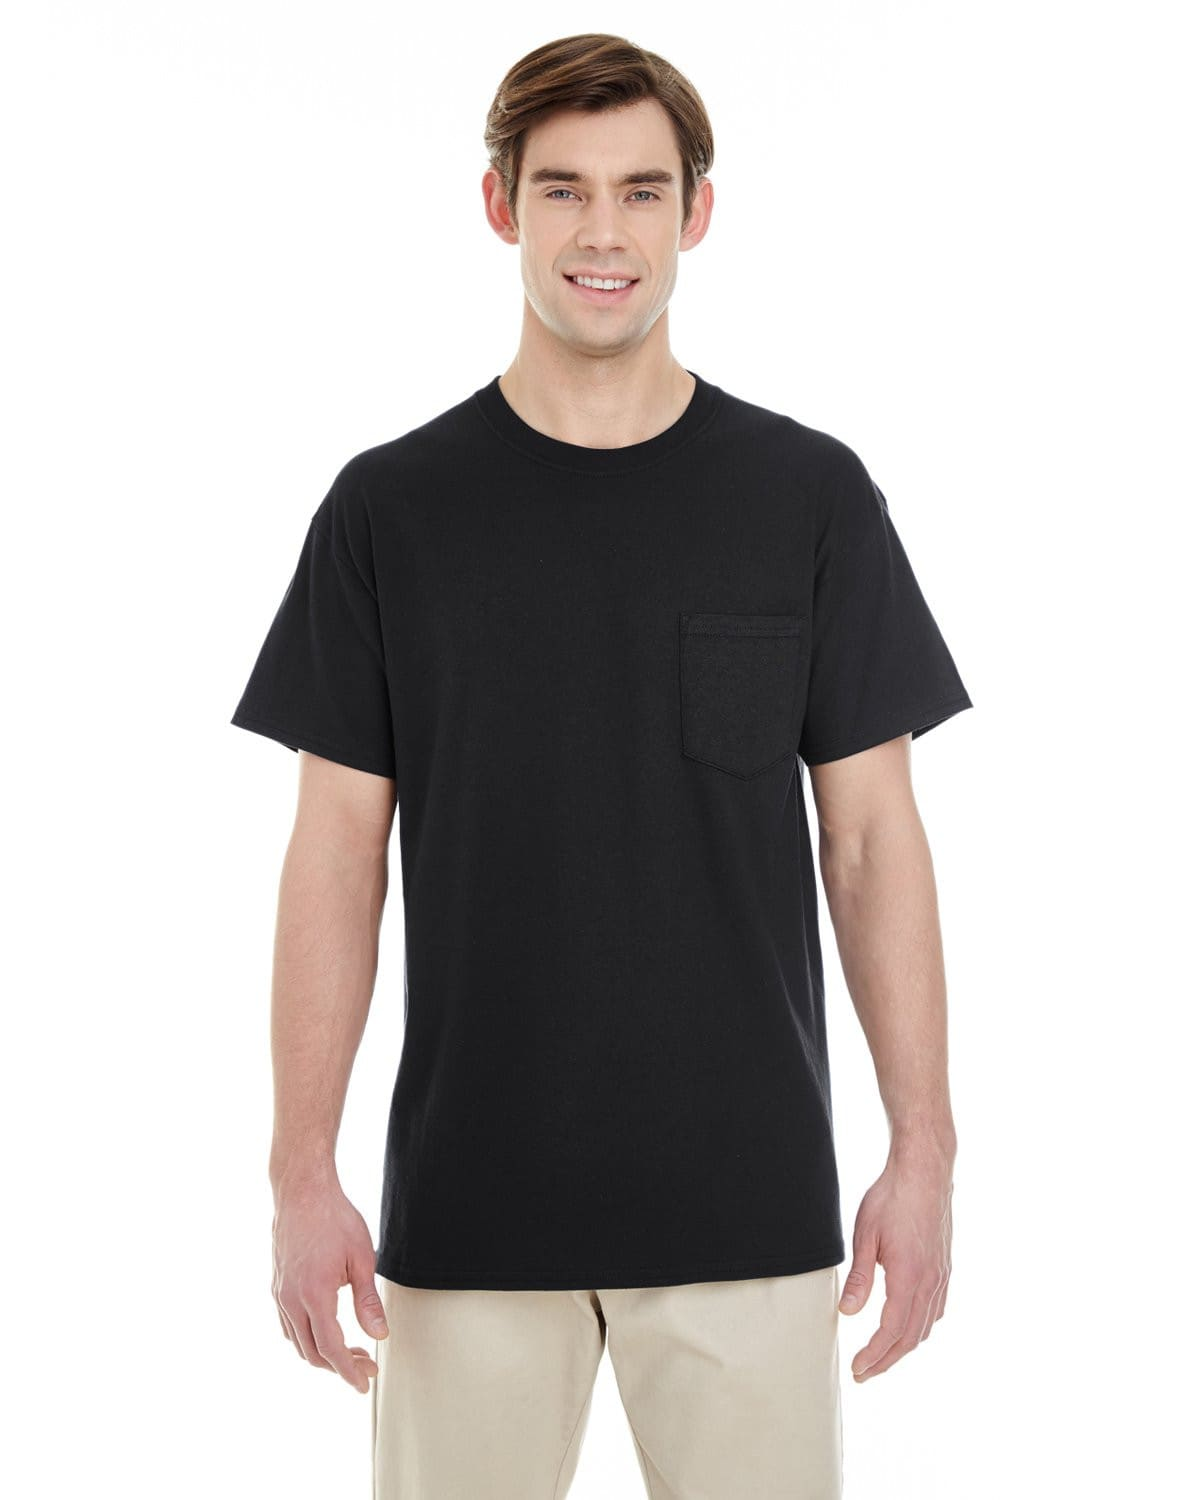 g530-adult-heavy-cotton-5-3oz-pocket-t-shirt-Small-BLACK-Oasispromos